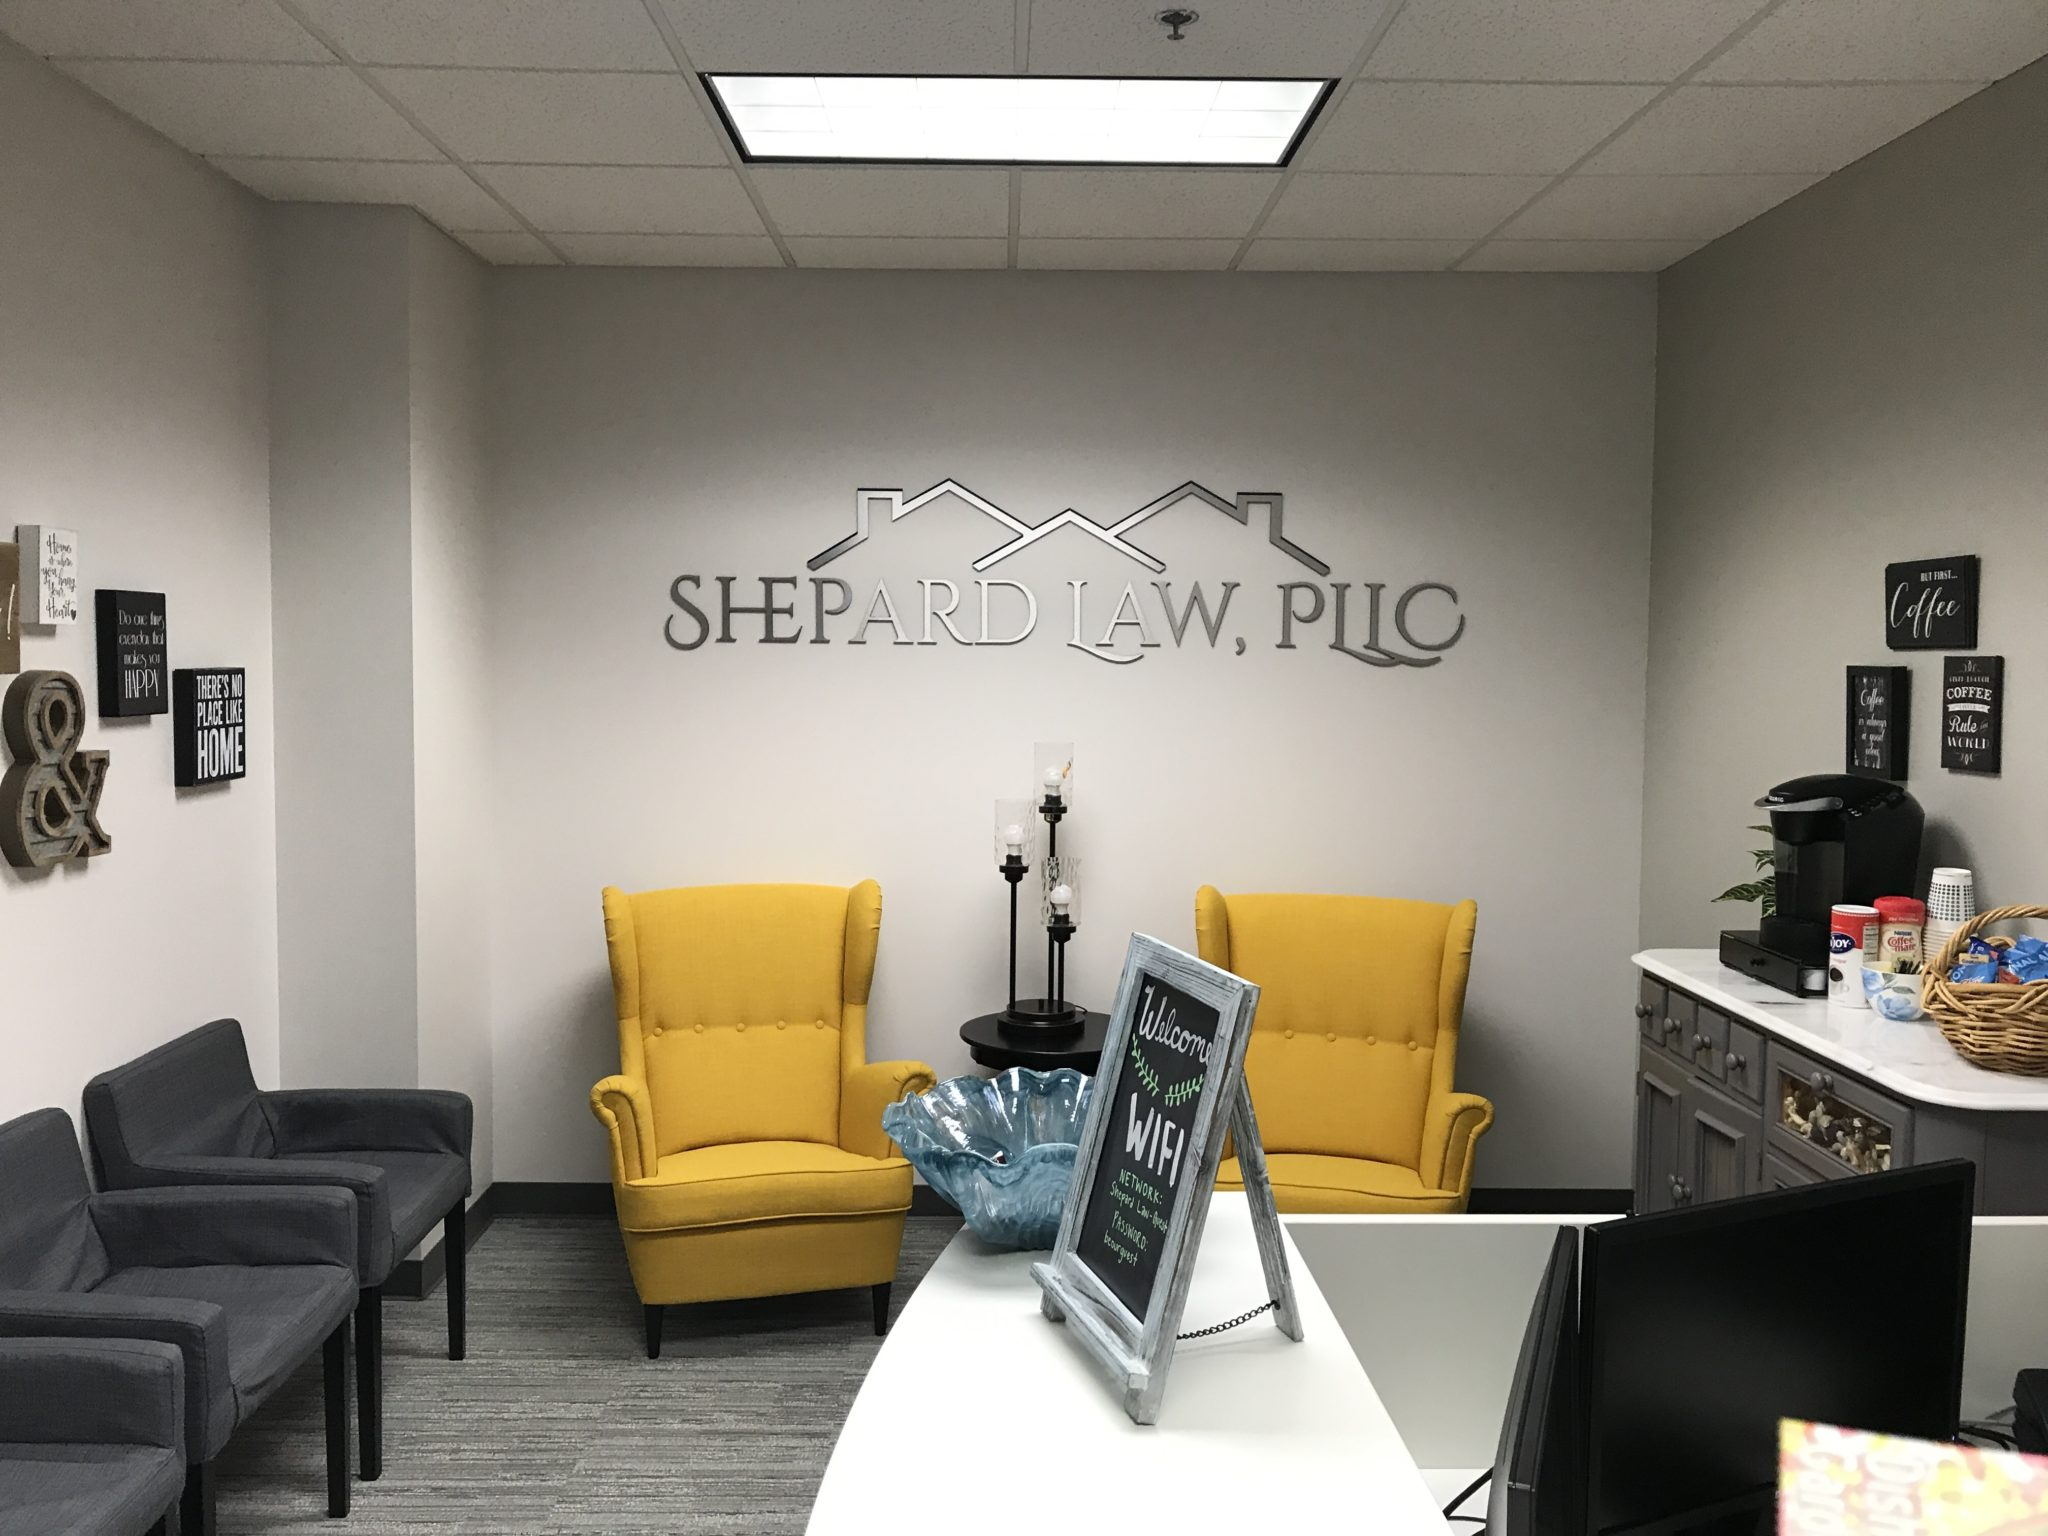 interior signs, lobby signs, logo signs, dimensional signage, sintra material, logo signage, lobby signs, financial office signs, business signs, sintra material,